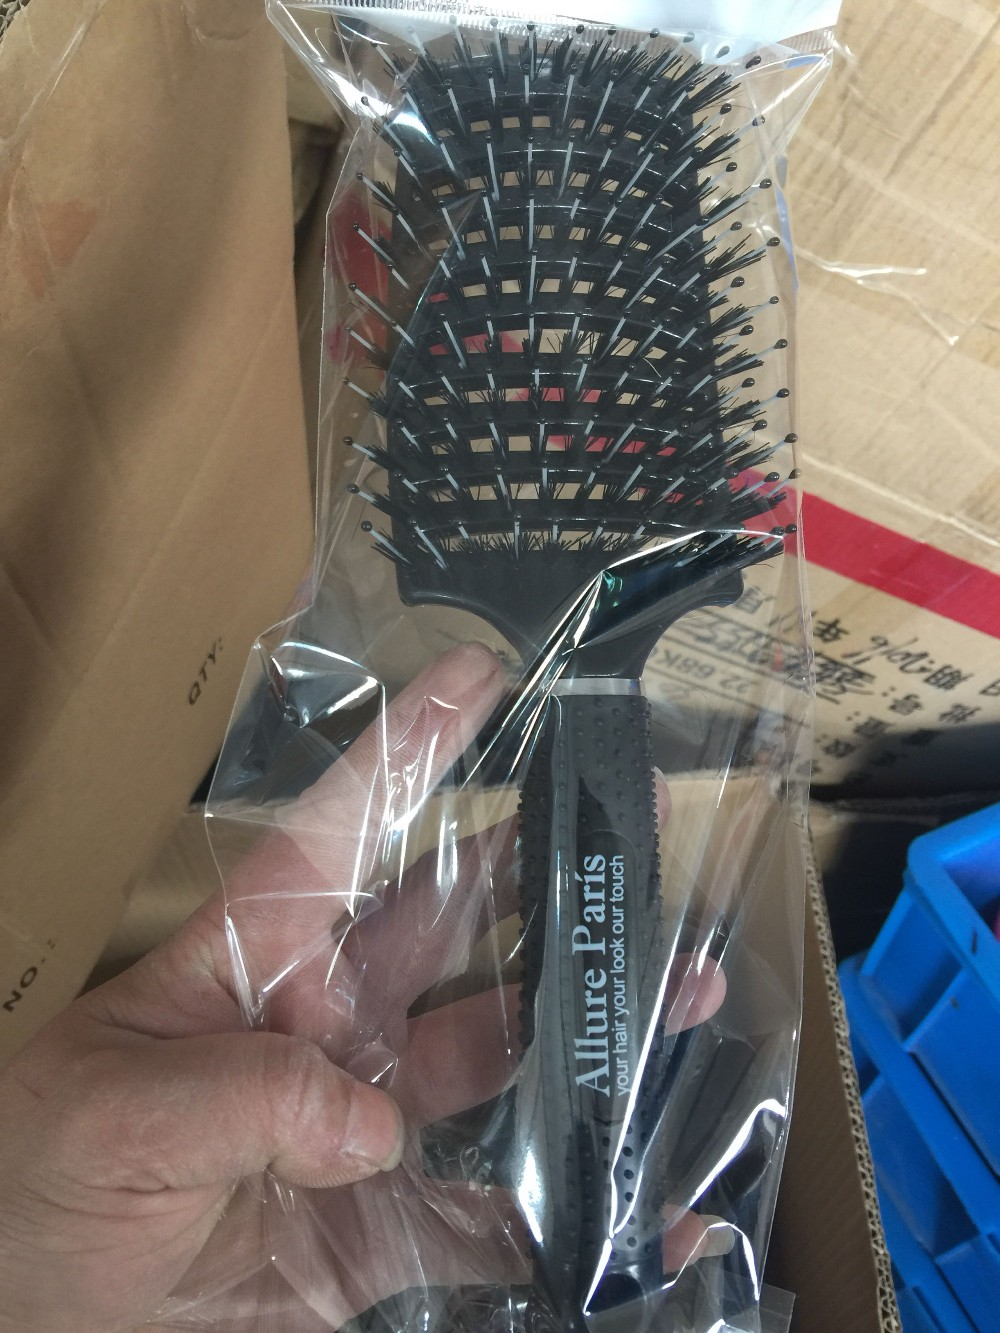 Boar Bristle Brush Best at Detangling Thick Hair Vented For Faster Drying - 100% Professional Natural Detangler bristles